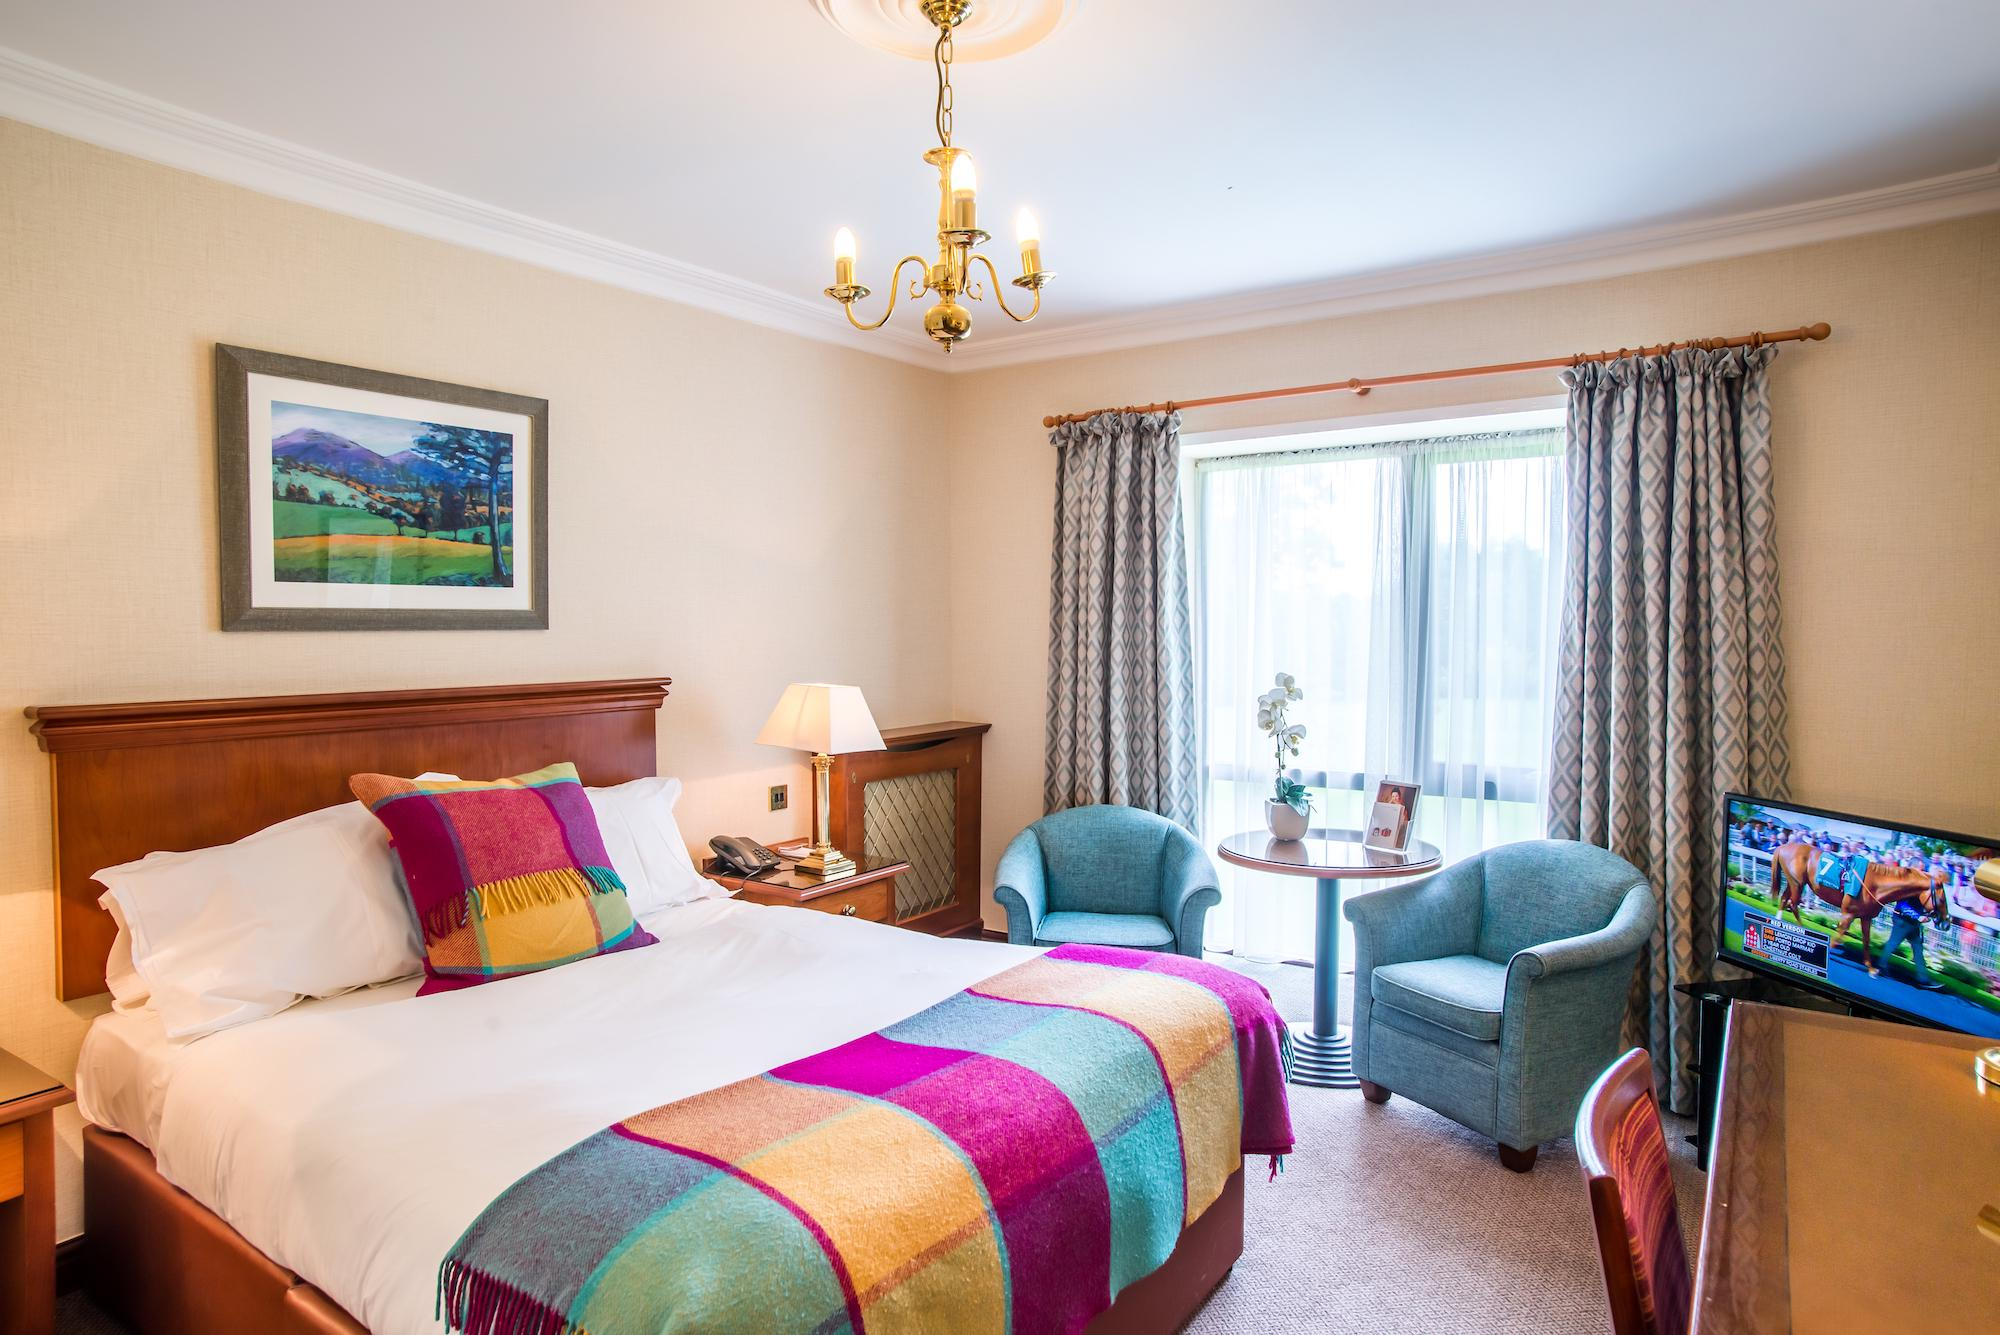 Hotels in Cwmbran holidays at Cool Places